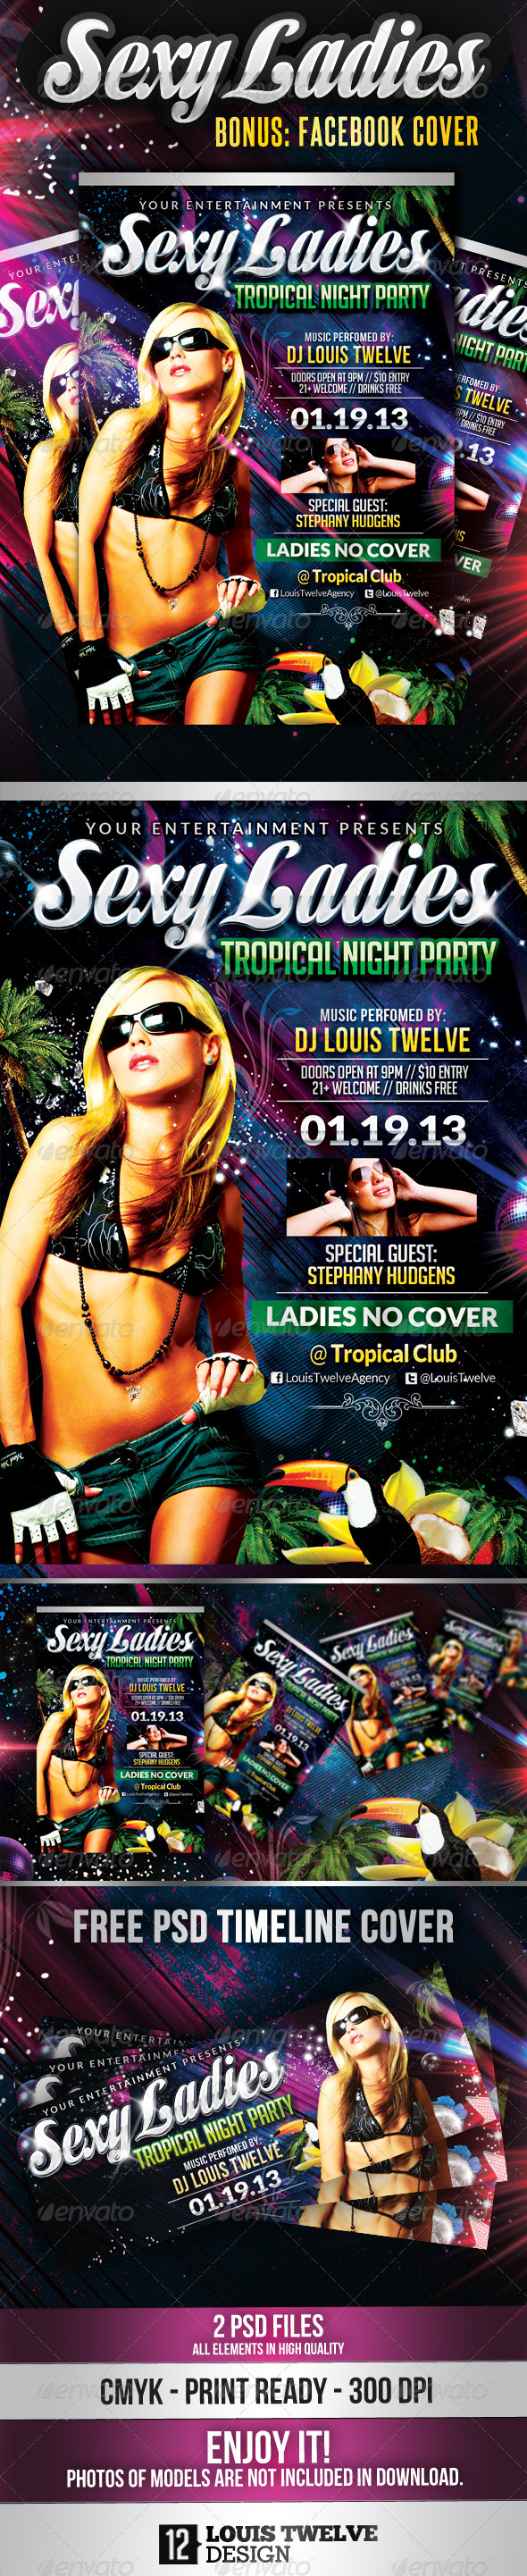 Sexy Ladies Tropìcal Night | Flyer + FB Cover - Clubs & Parties Events